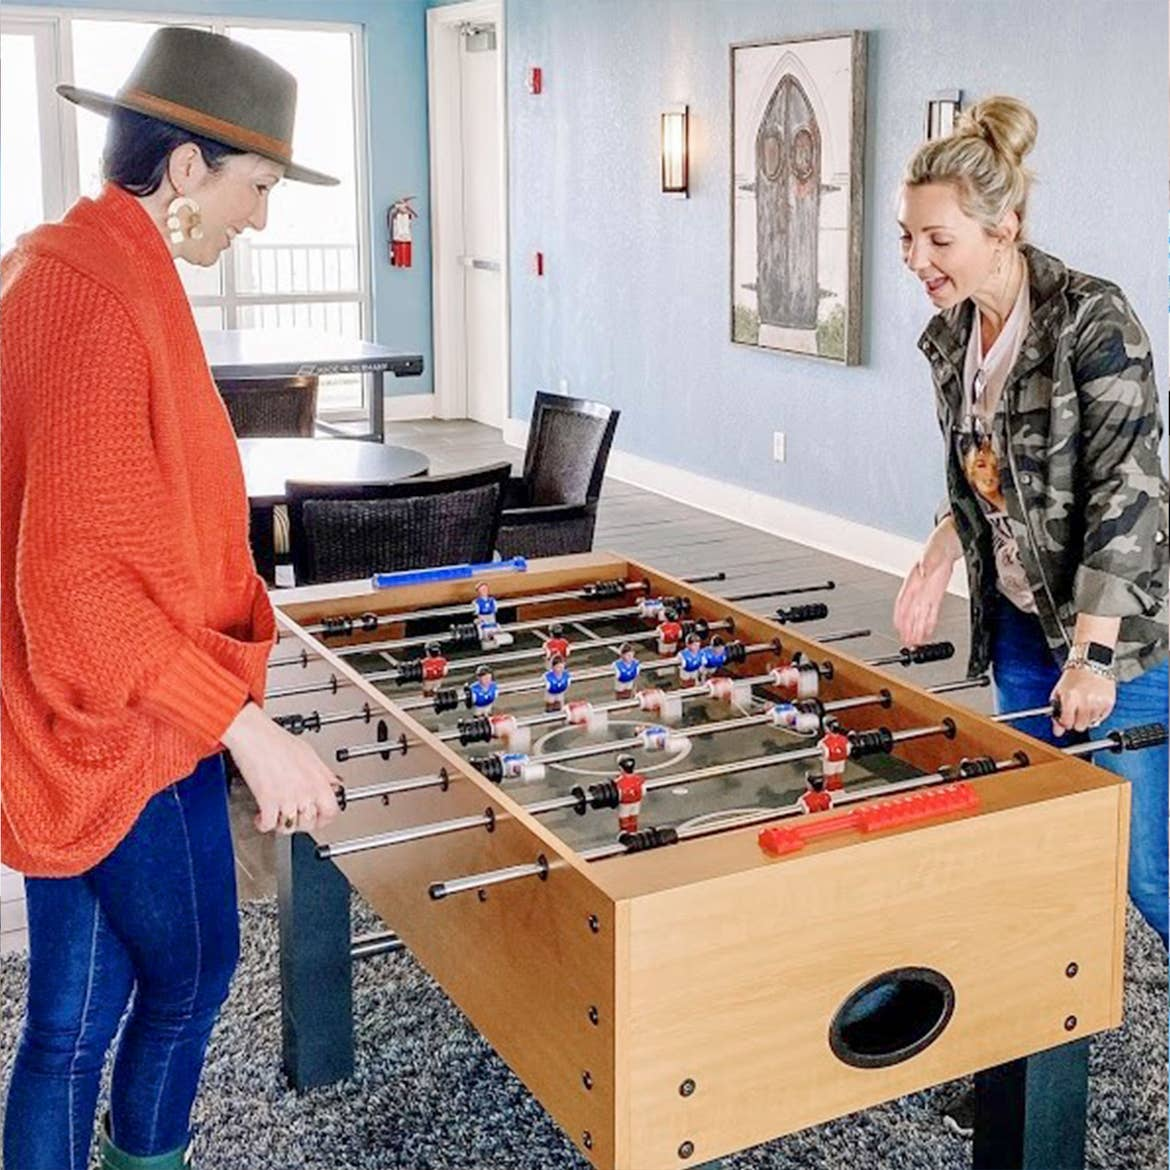 Featured Contributor, Amanda Nall (right) plays foosball with her friend at our Galveston Beach Resort in Galveston, Tx.